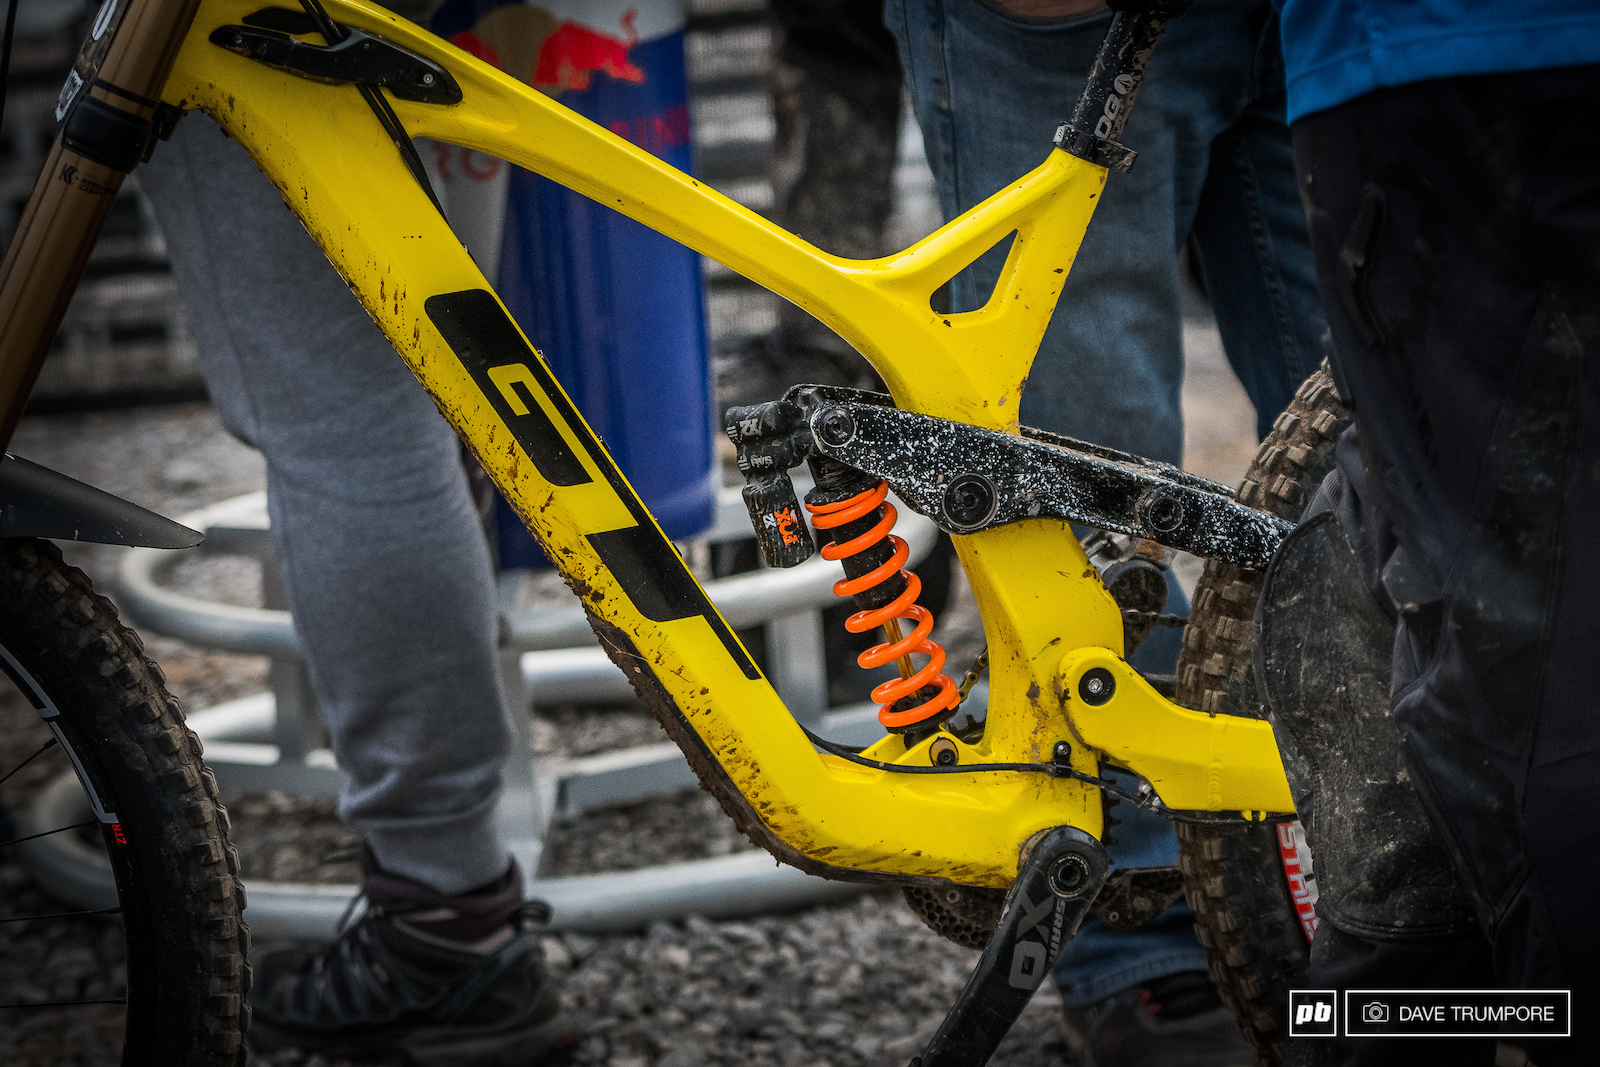 Prototype GT downhill bike